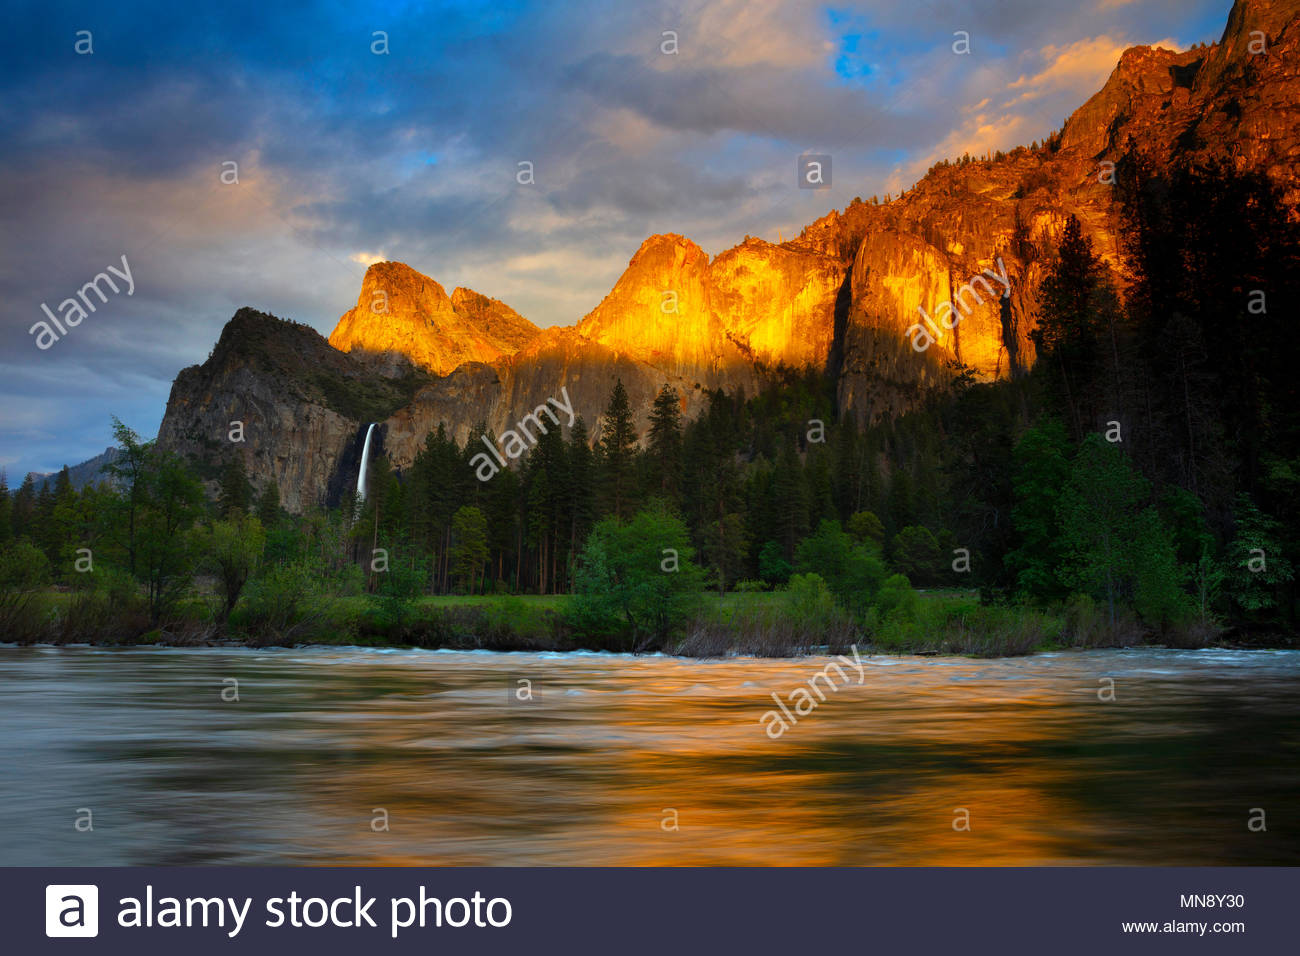 The golden light of sunset reflects off several Yosemite peaks, including the Leaning Tower and Dewey Point, onto the Merced River at Valley View in Y - Stock Image